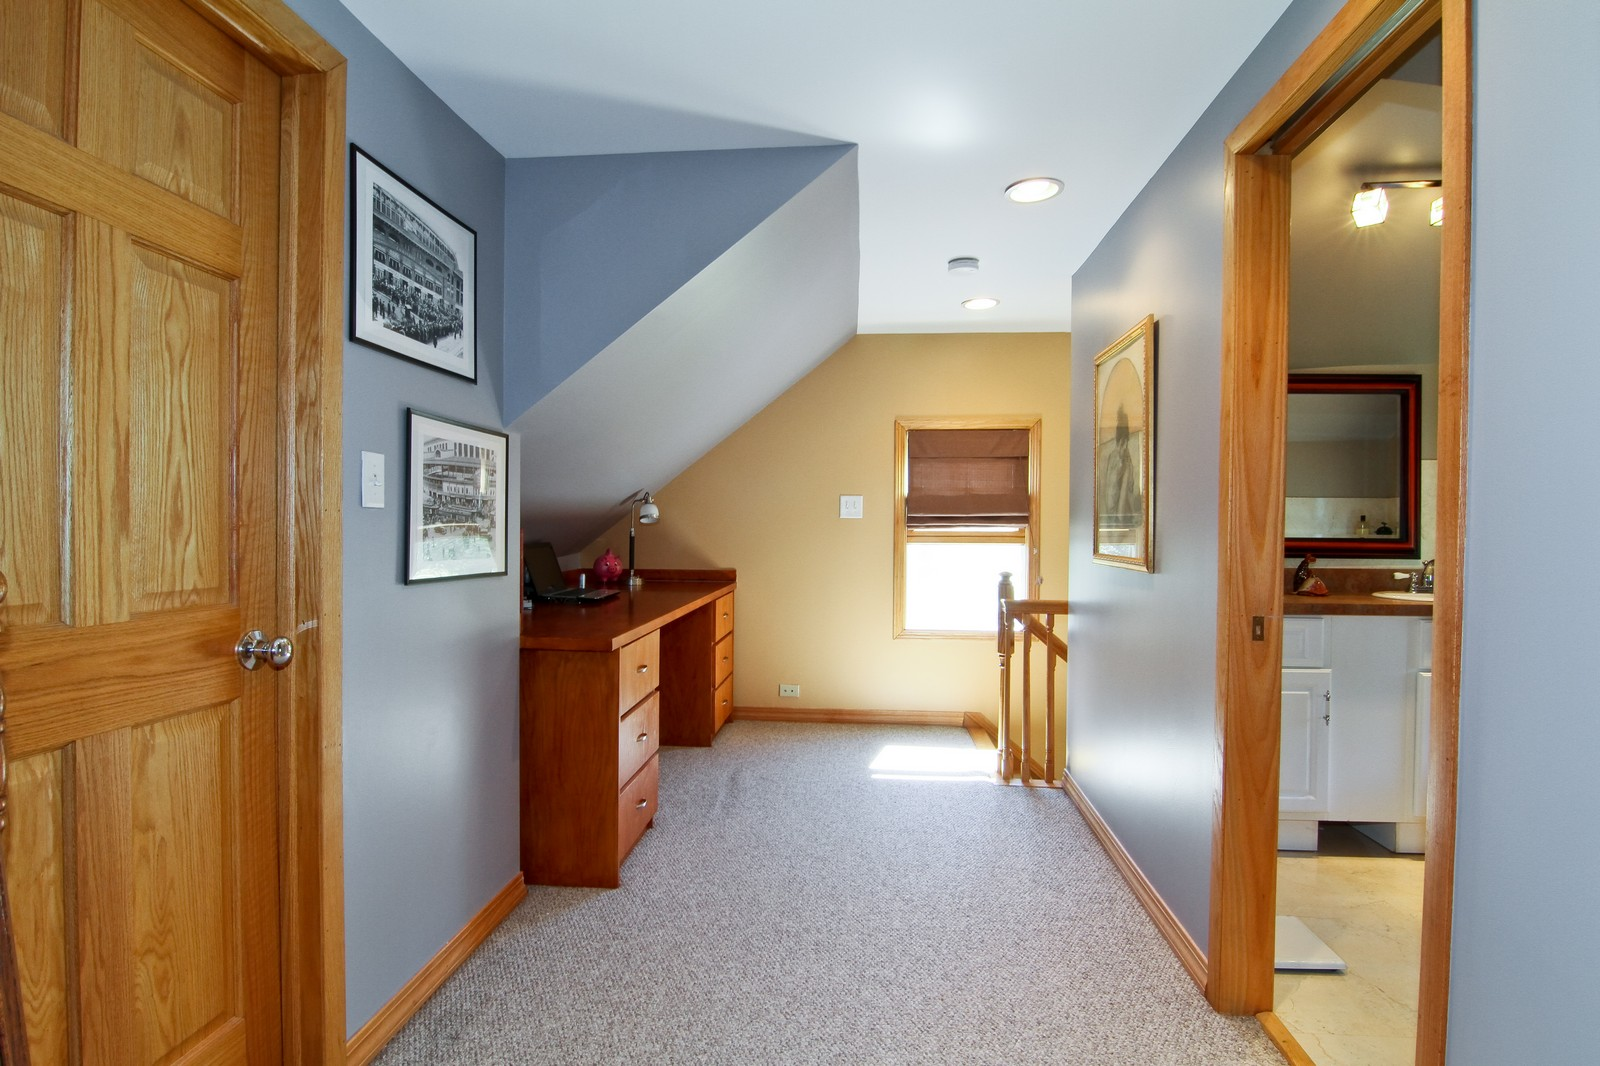 Real Estate Photography - 7760 W 82nd St, Bridgeview, IL, 60455 - Hallway